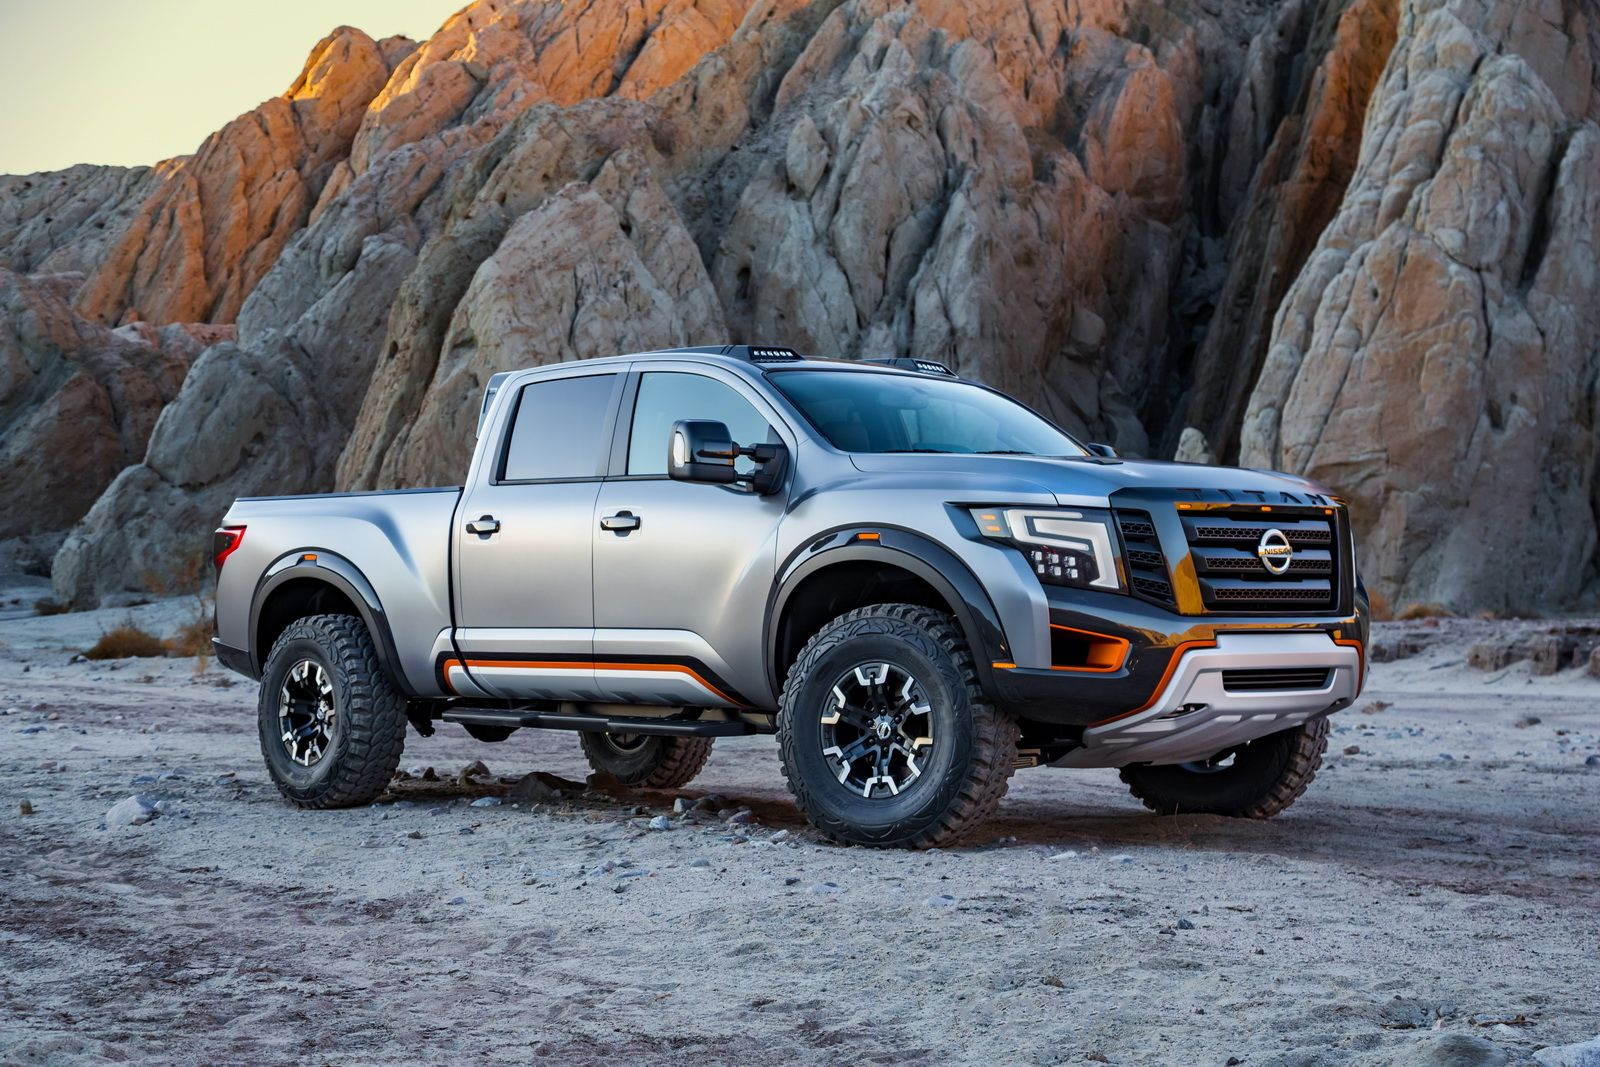 Nissan S An Warrior Concept Is Proof We Need More Baja Inspired Trucks